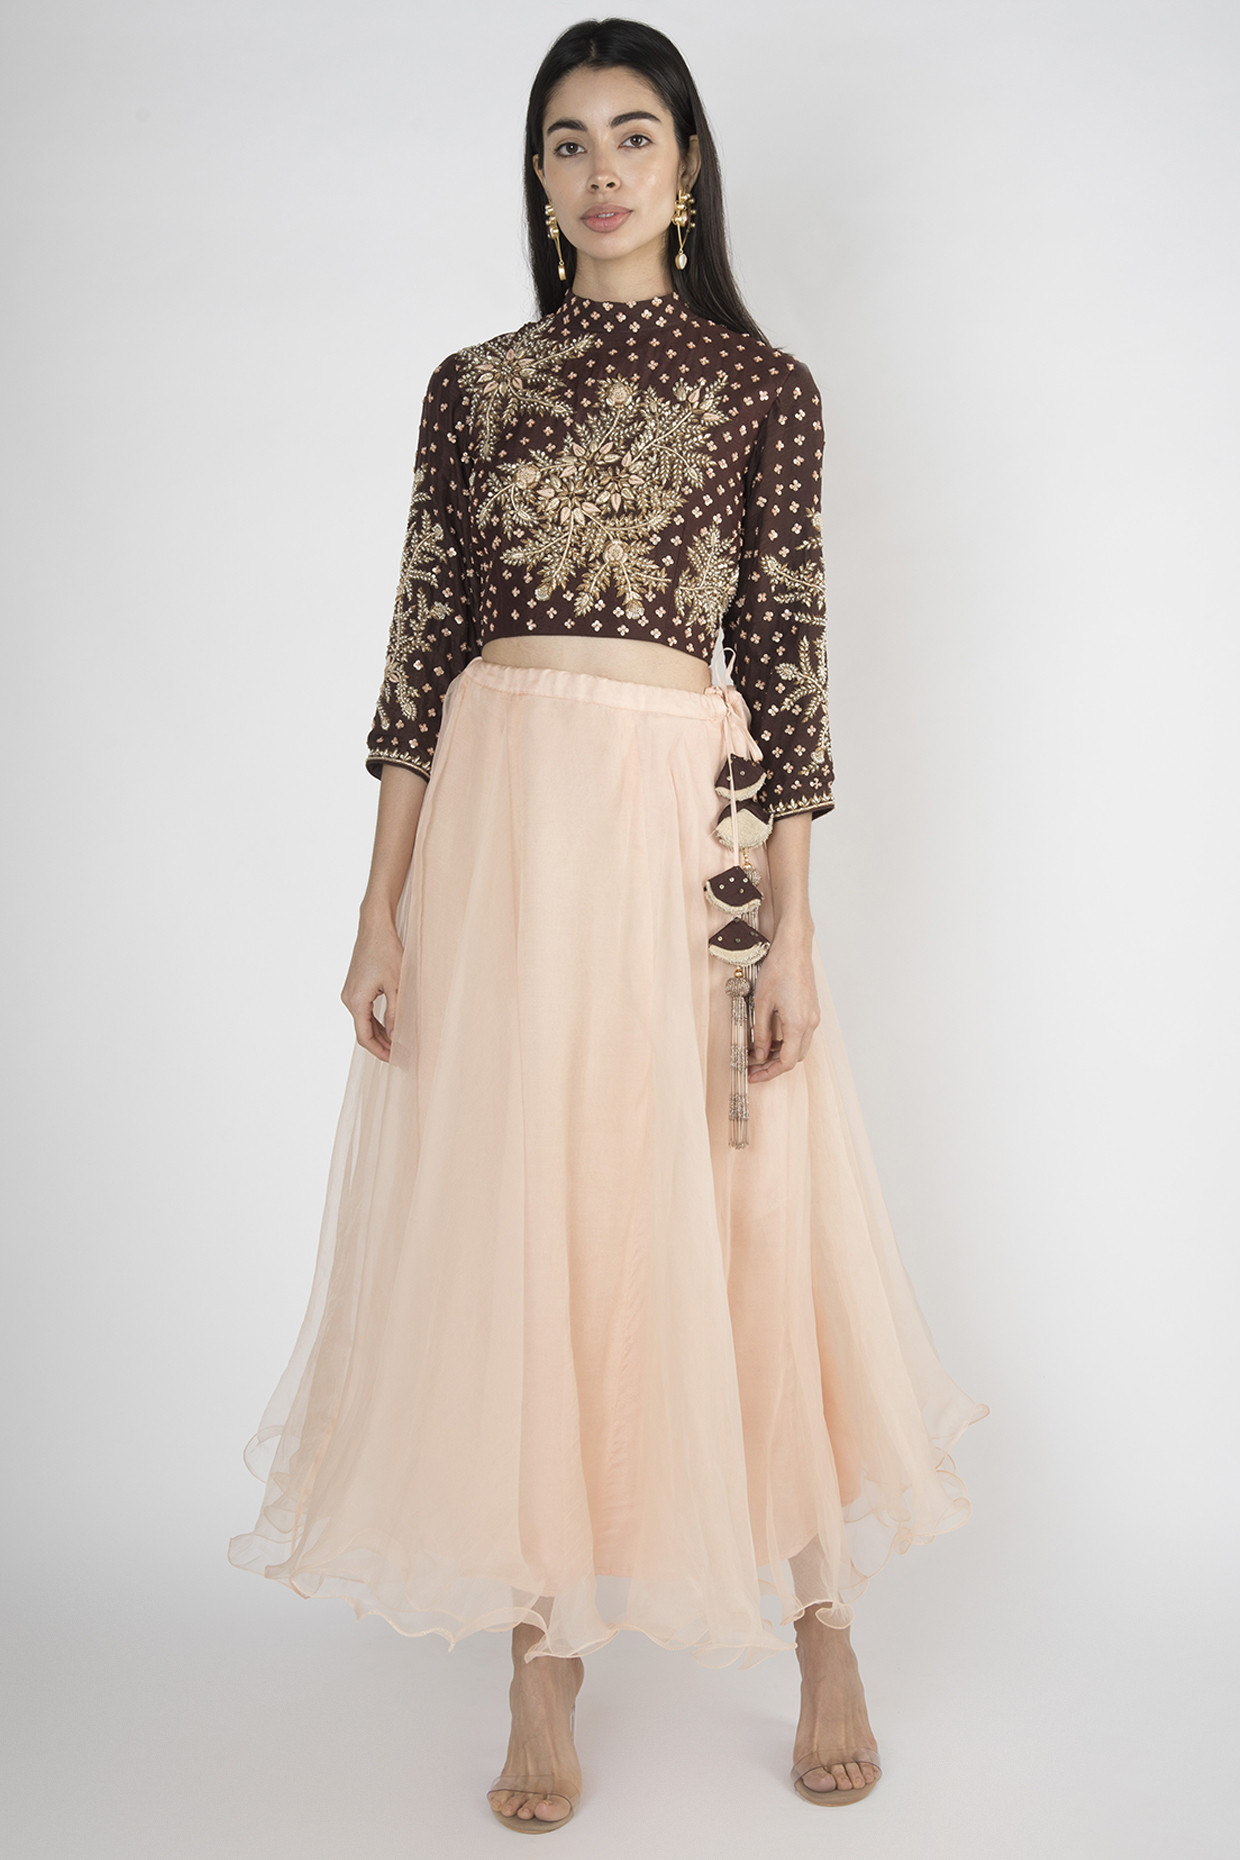 Brown Crop Top With Peach Lehenga Skirt by Megh Malhaar